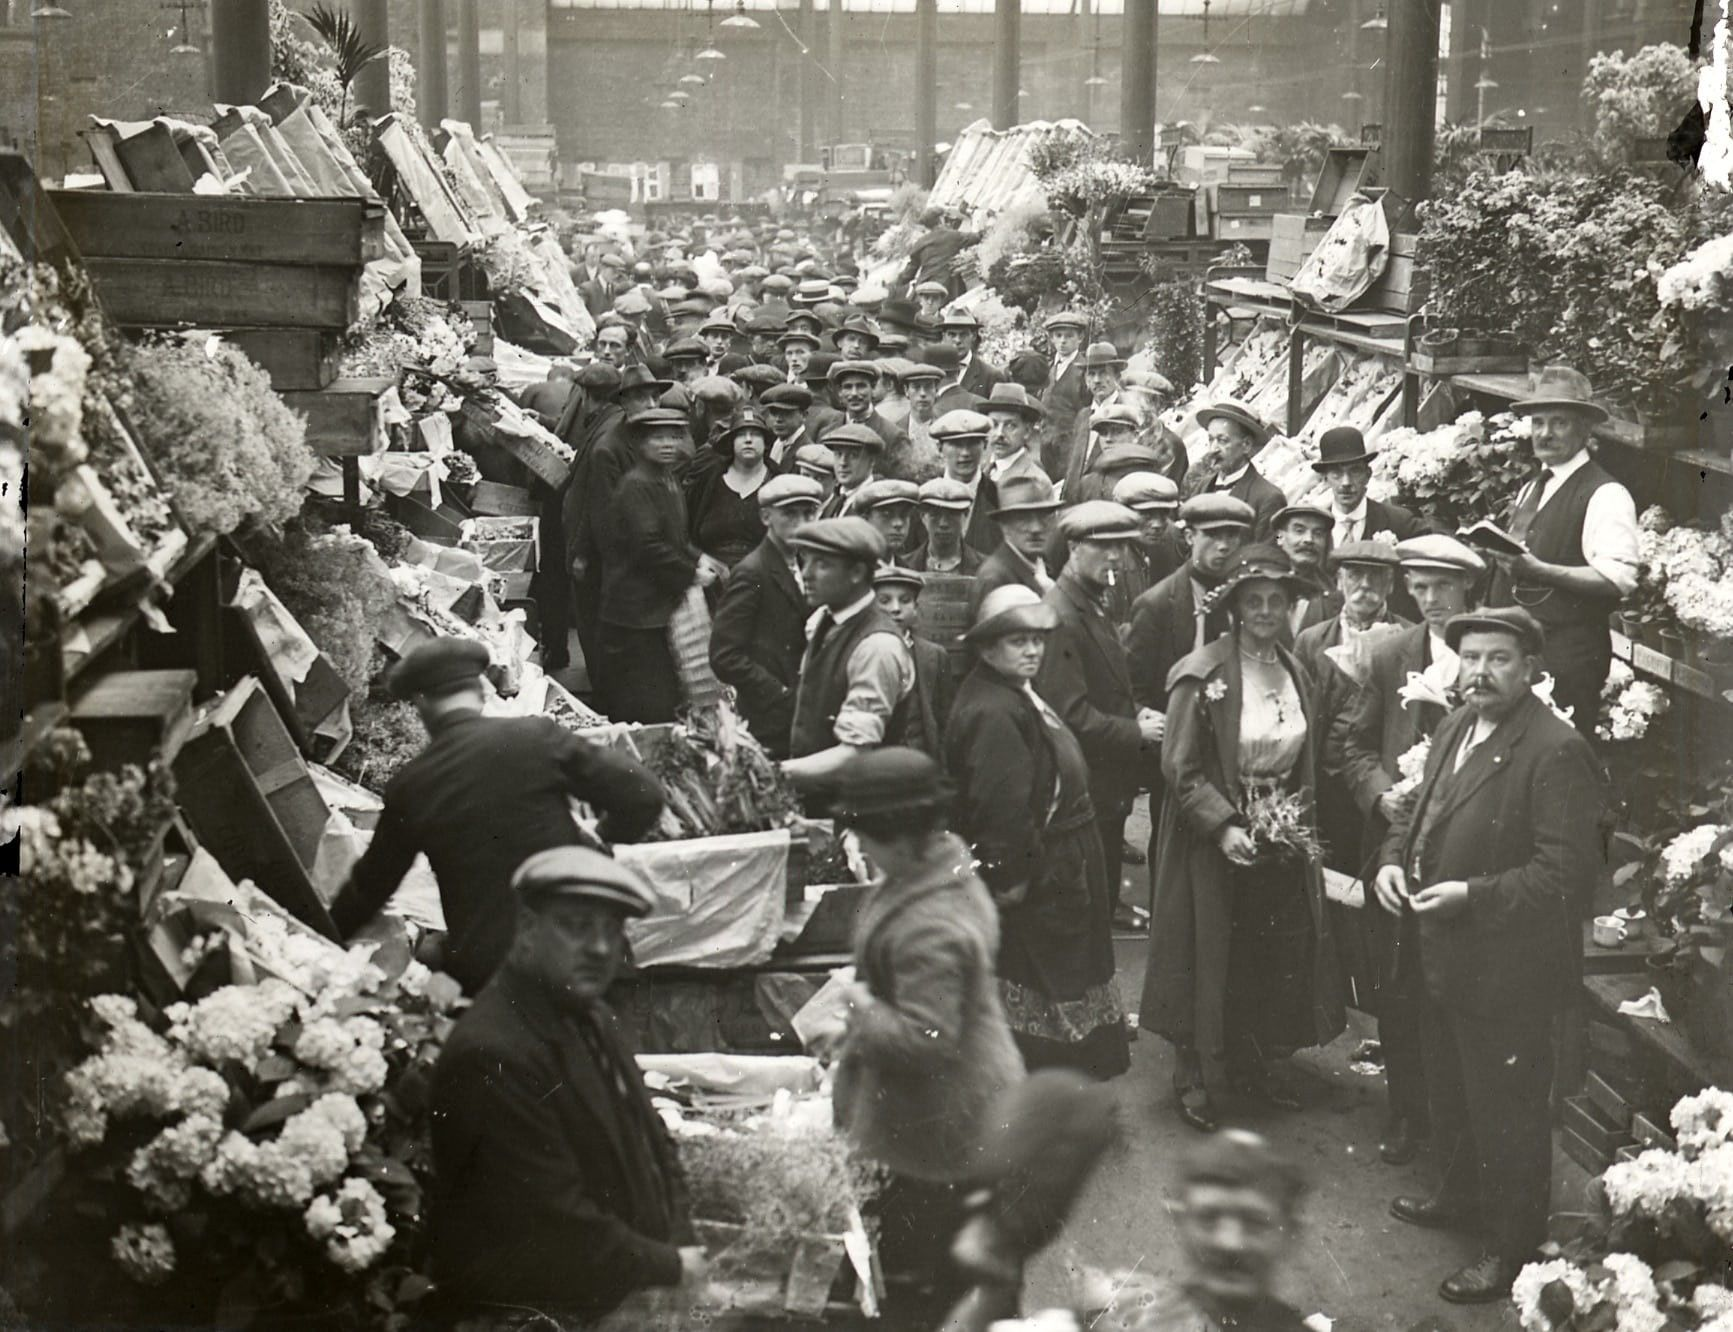 Covent Garden Market, Floral Hall. Photographer unknown. c